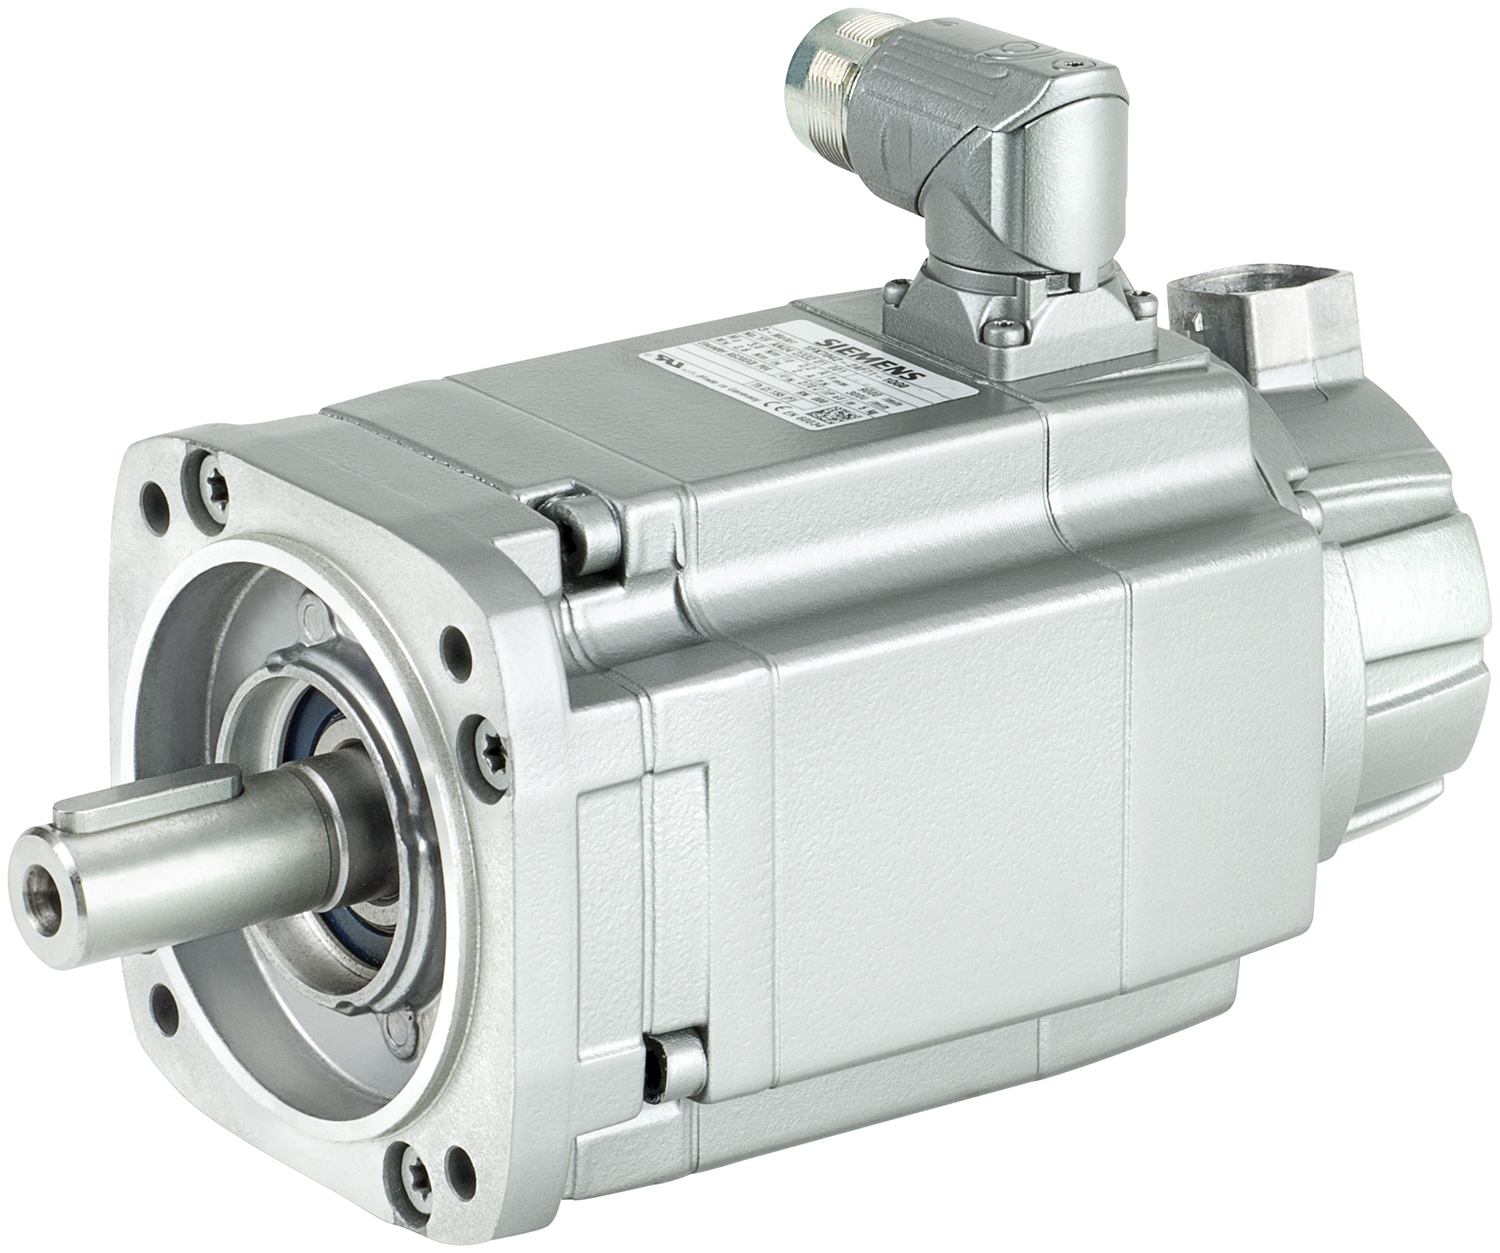 Siemens Announces Reduced Lead Times For Servomotors